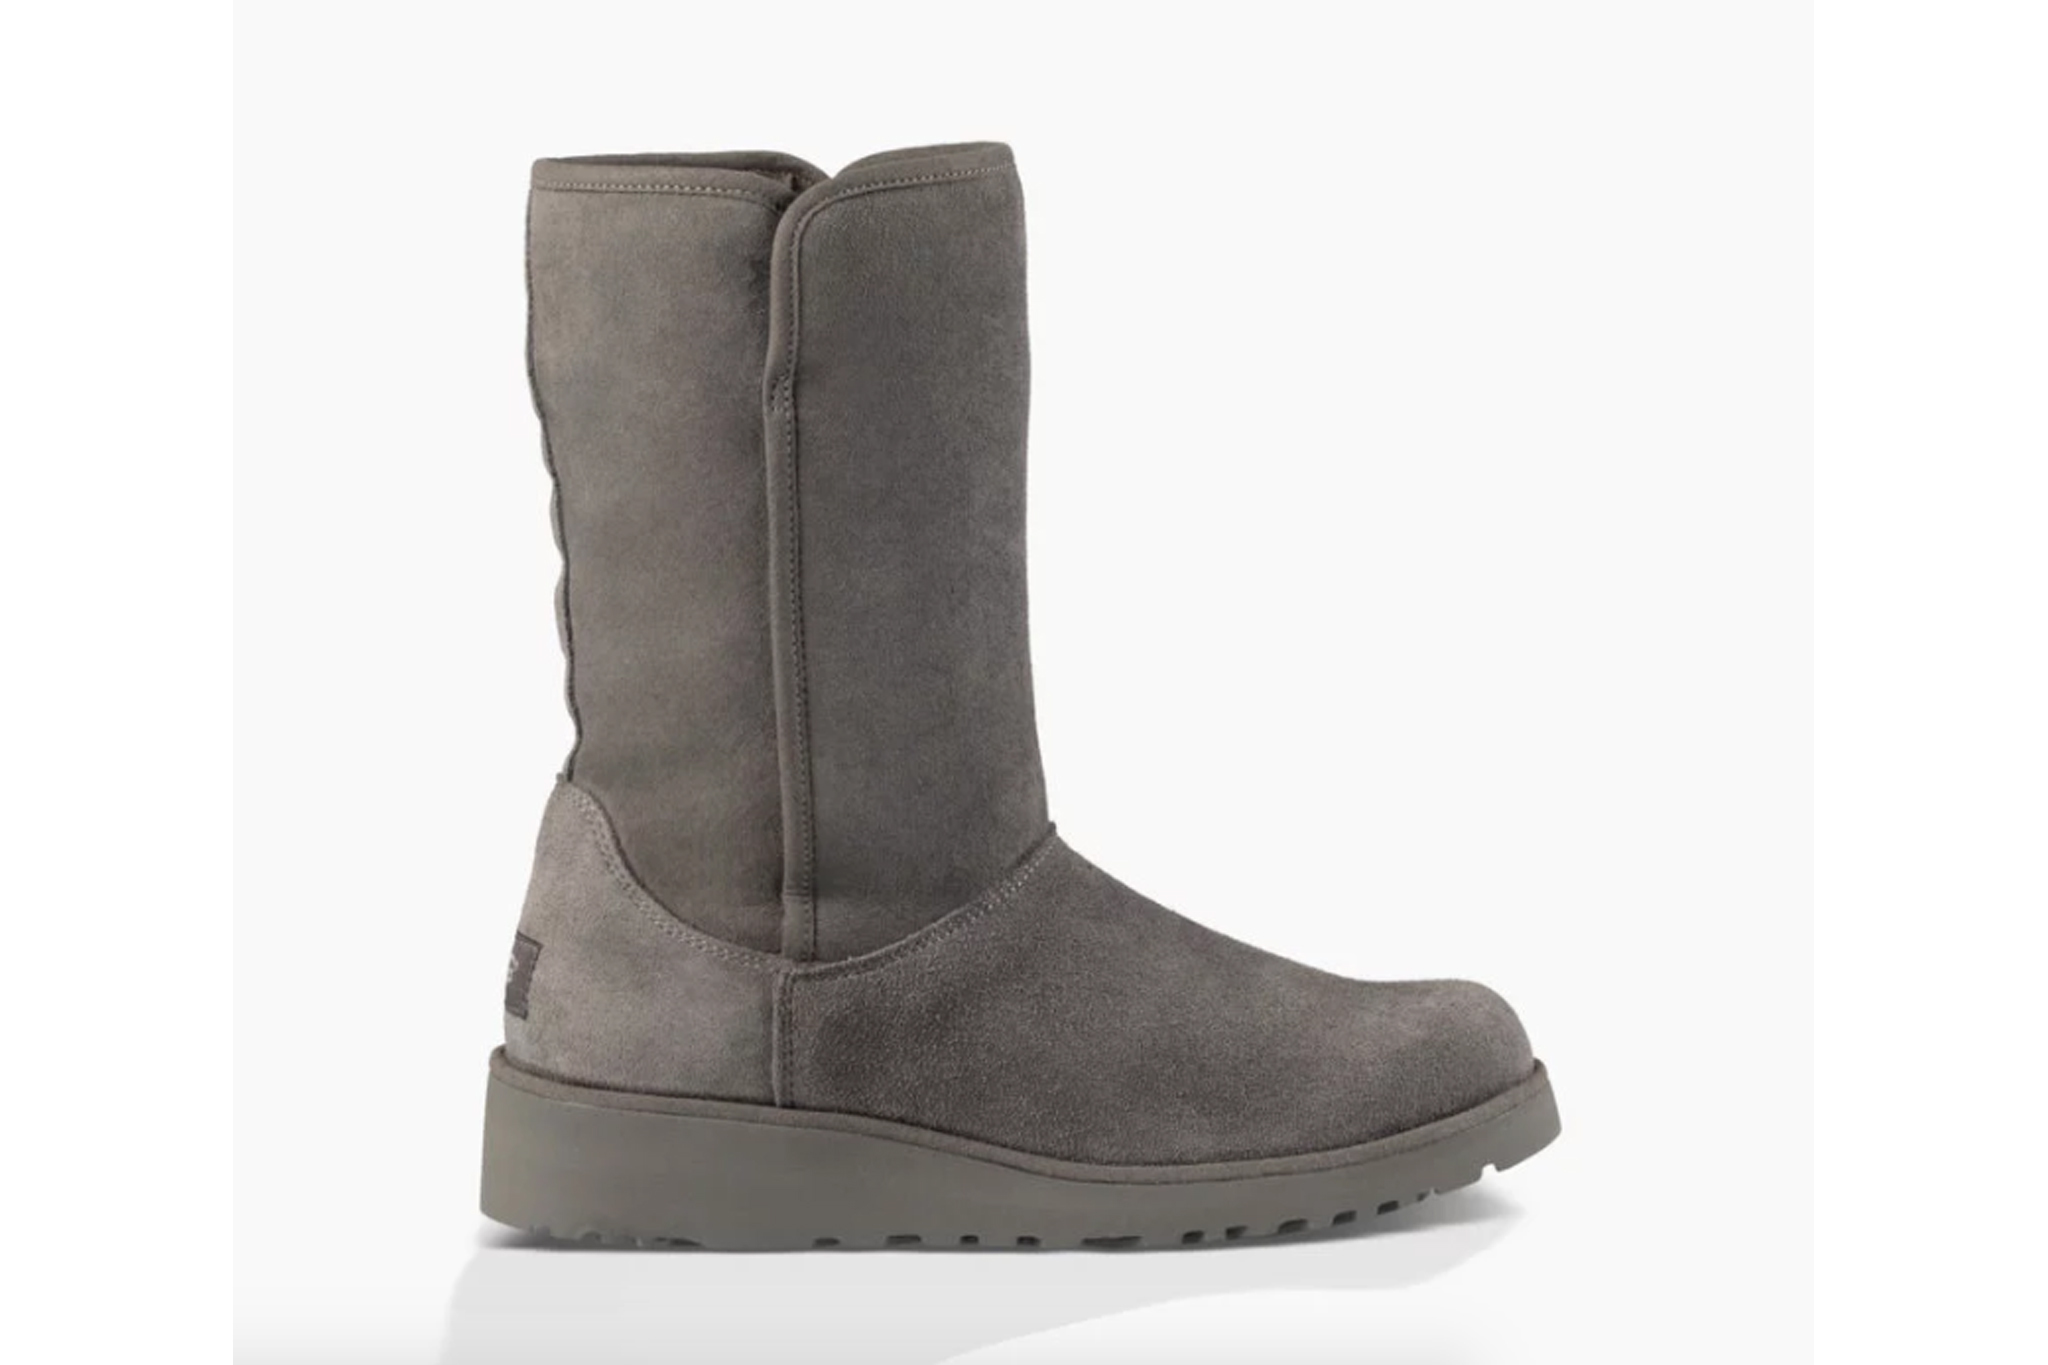 7accce6fb98 16 of the Most Fashion-Forward Boots for Fall